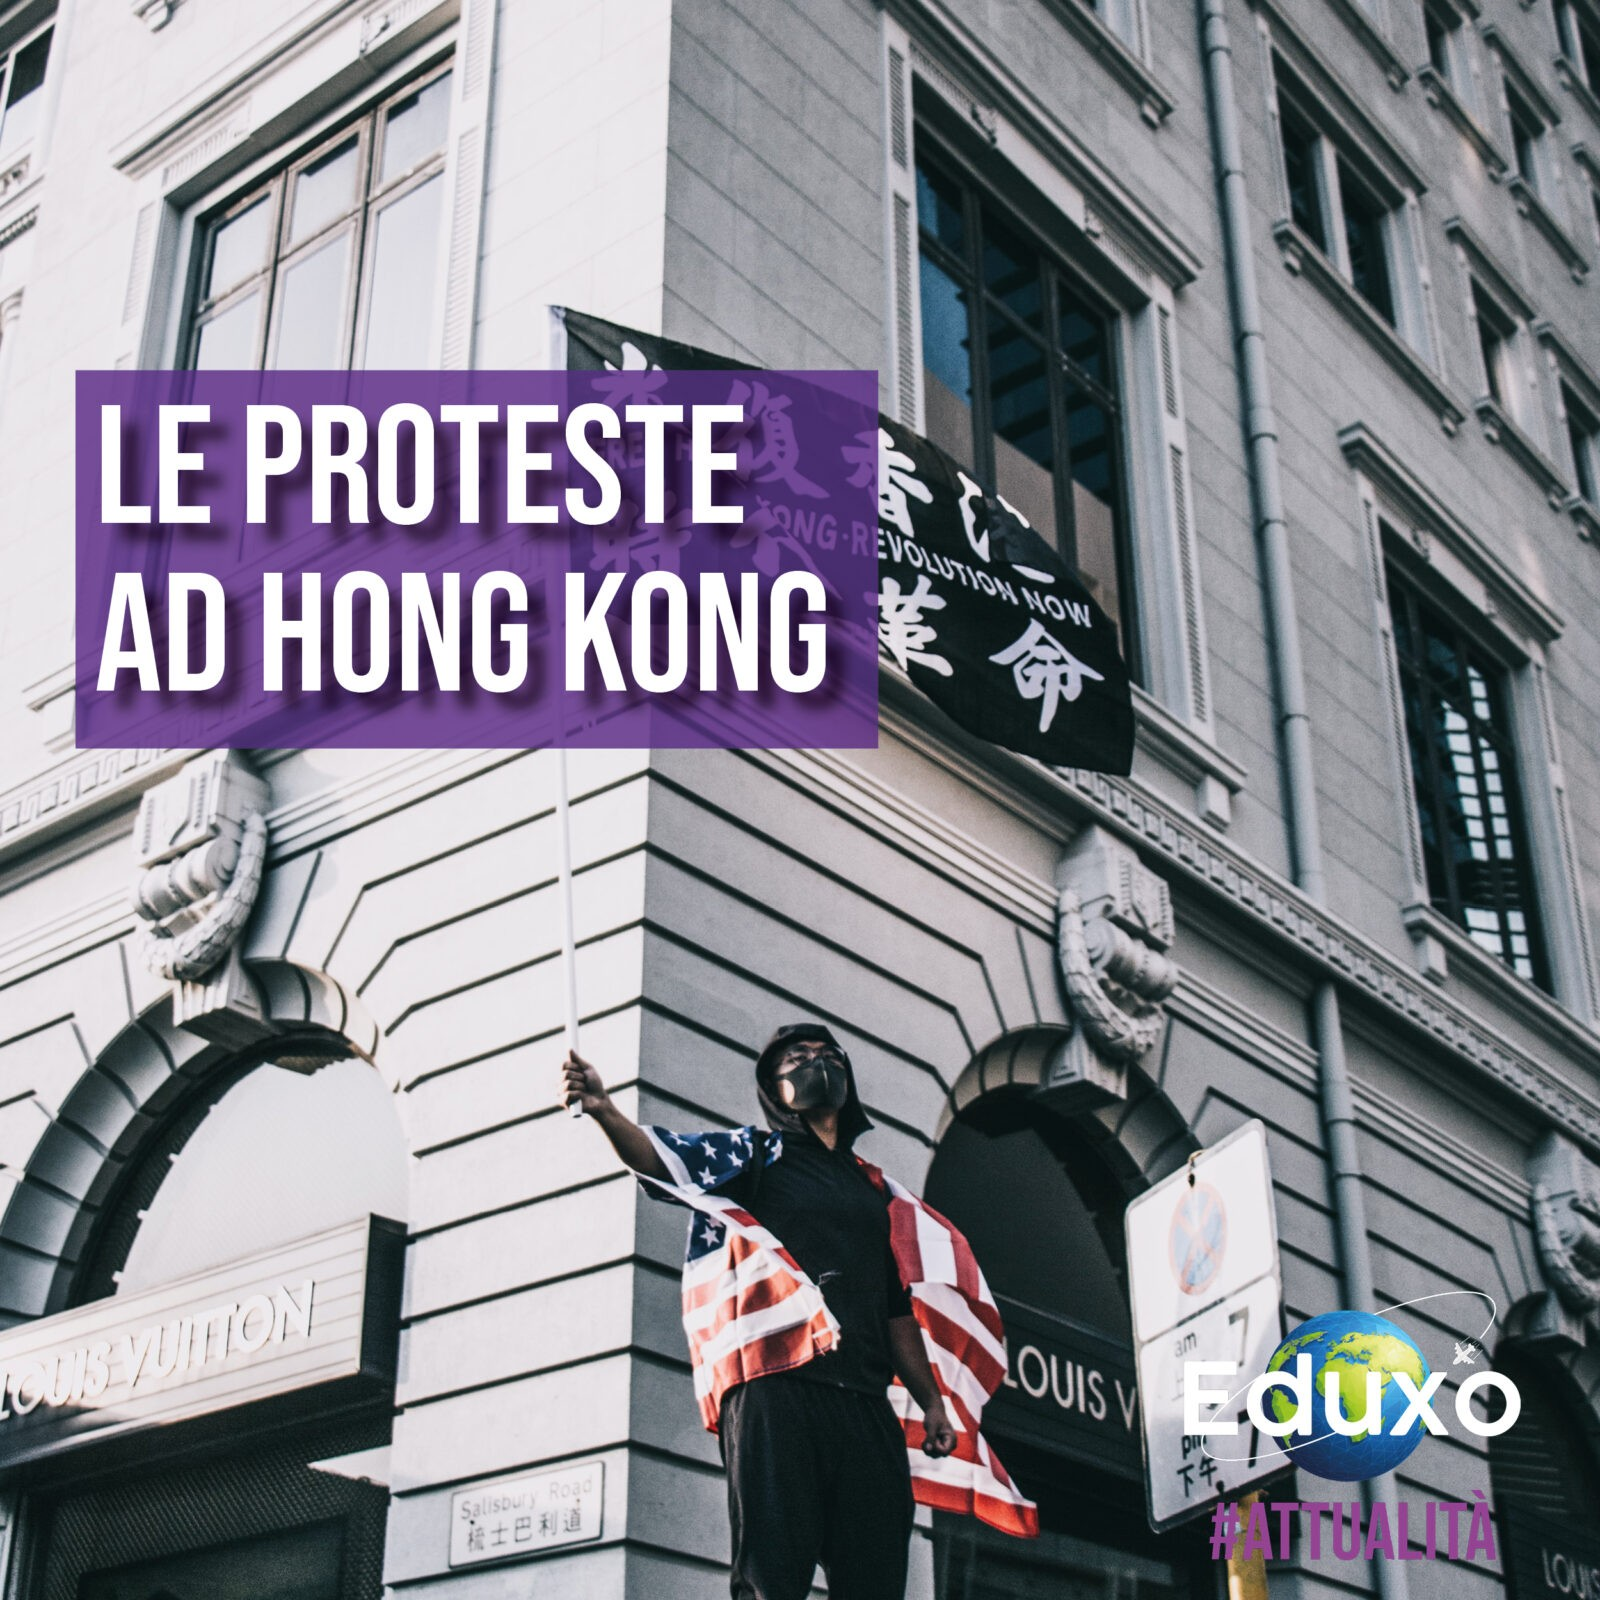 You are currently viewing Le proteste ad Hong Kong